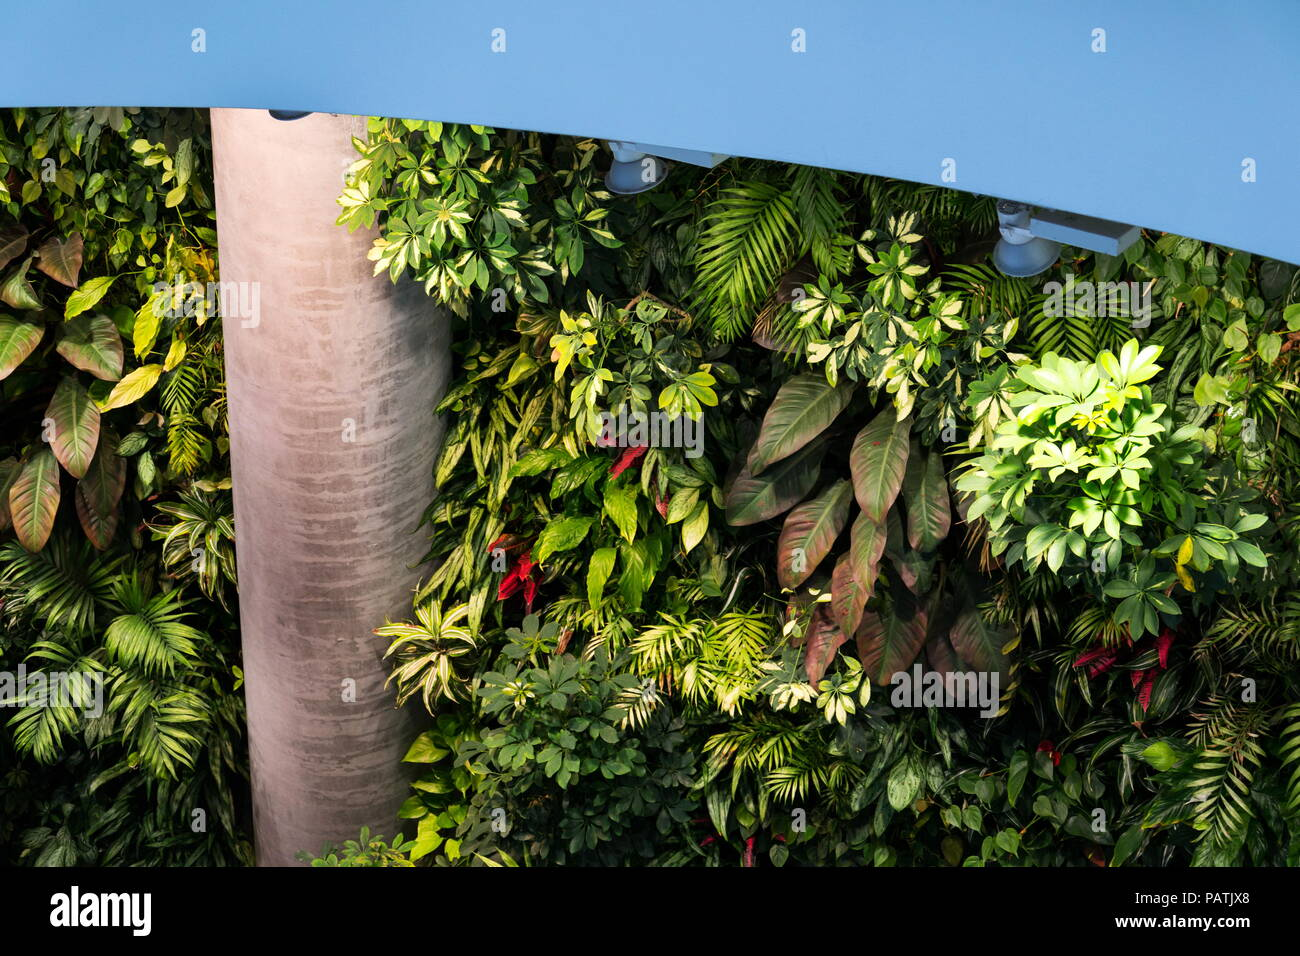 Vertical Living Wall Vertical garden, green living wall with flowers and plants, indoors